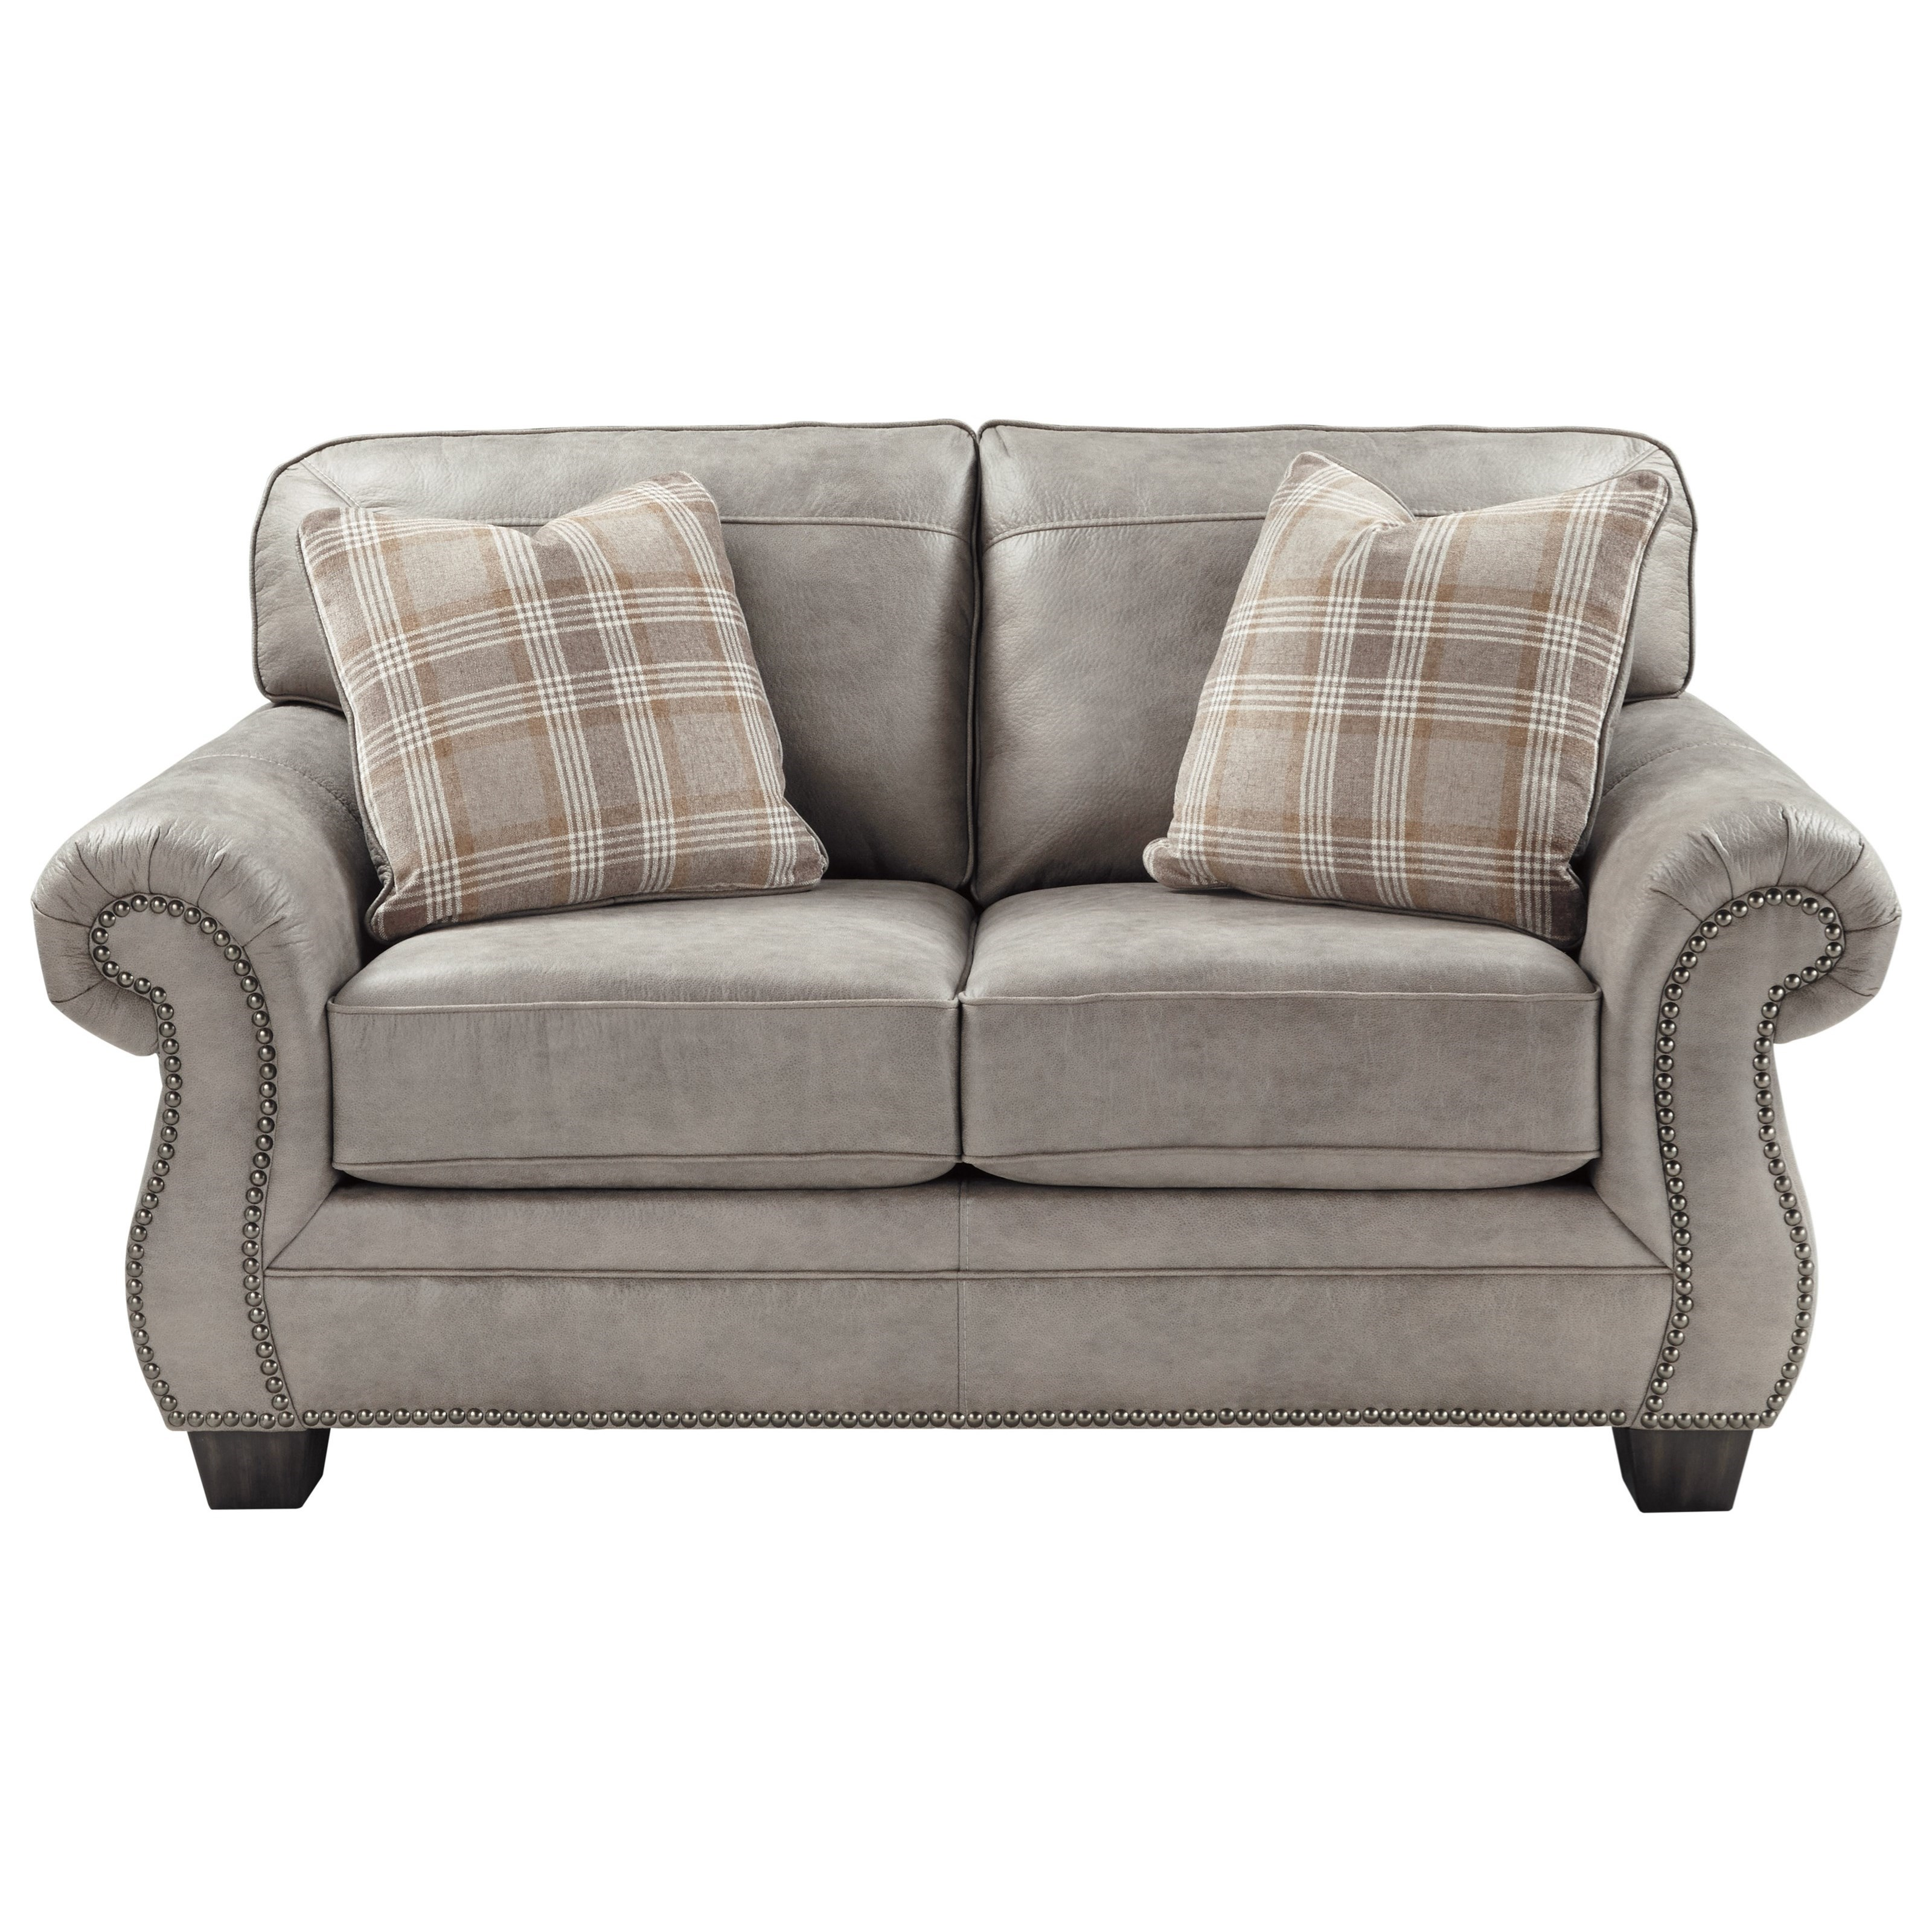 Ashley Furniture Signature Collection: Ashley (Signature Design) Olsberg Transitional Loveseat